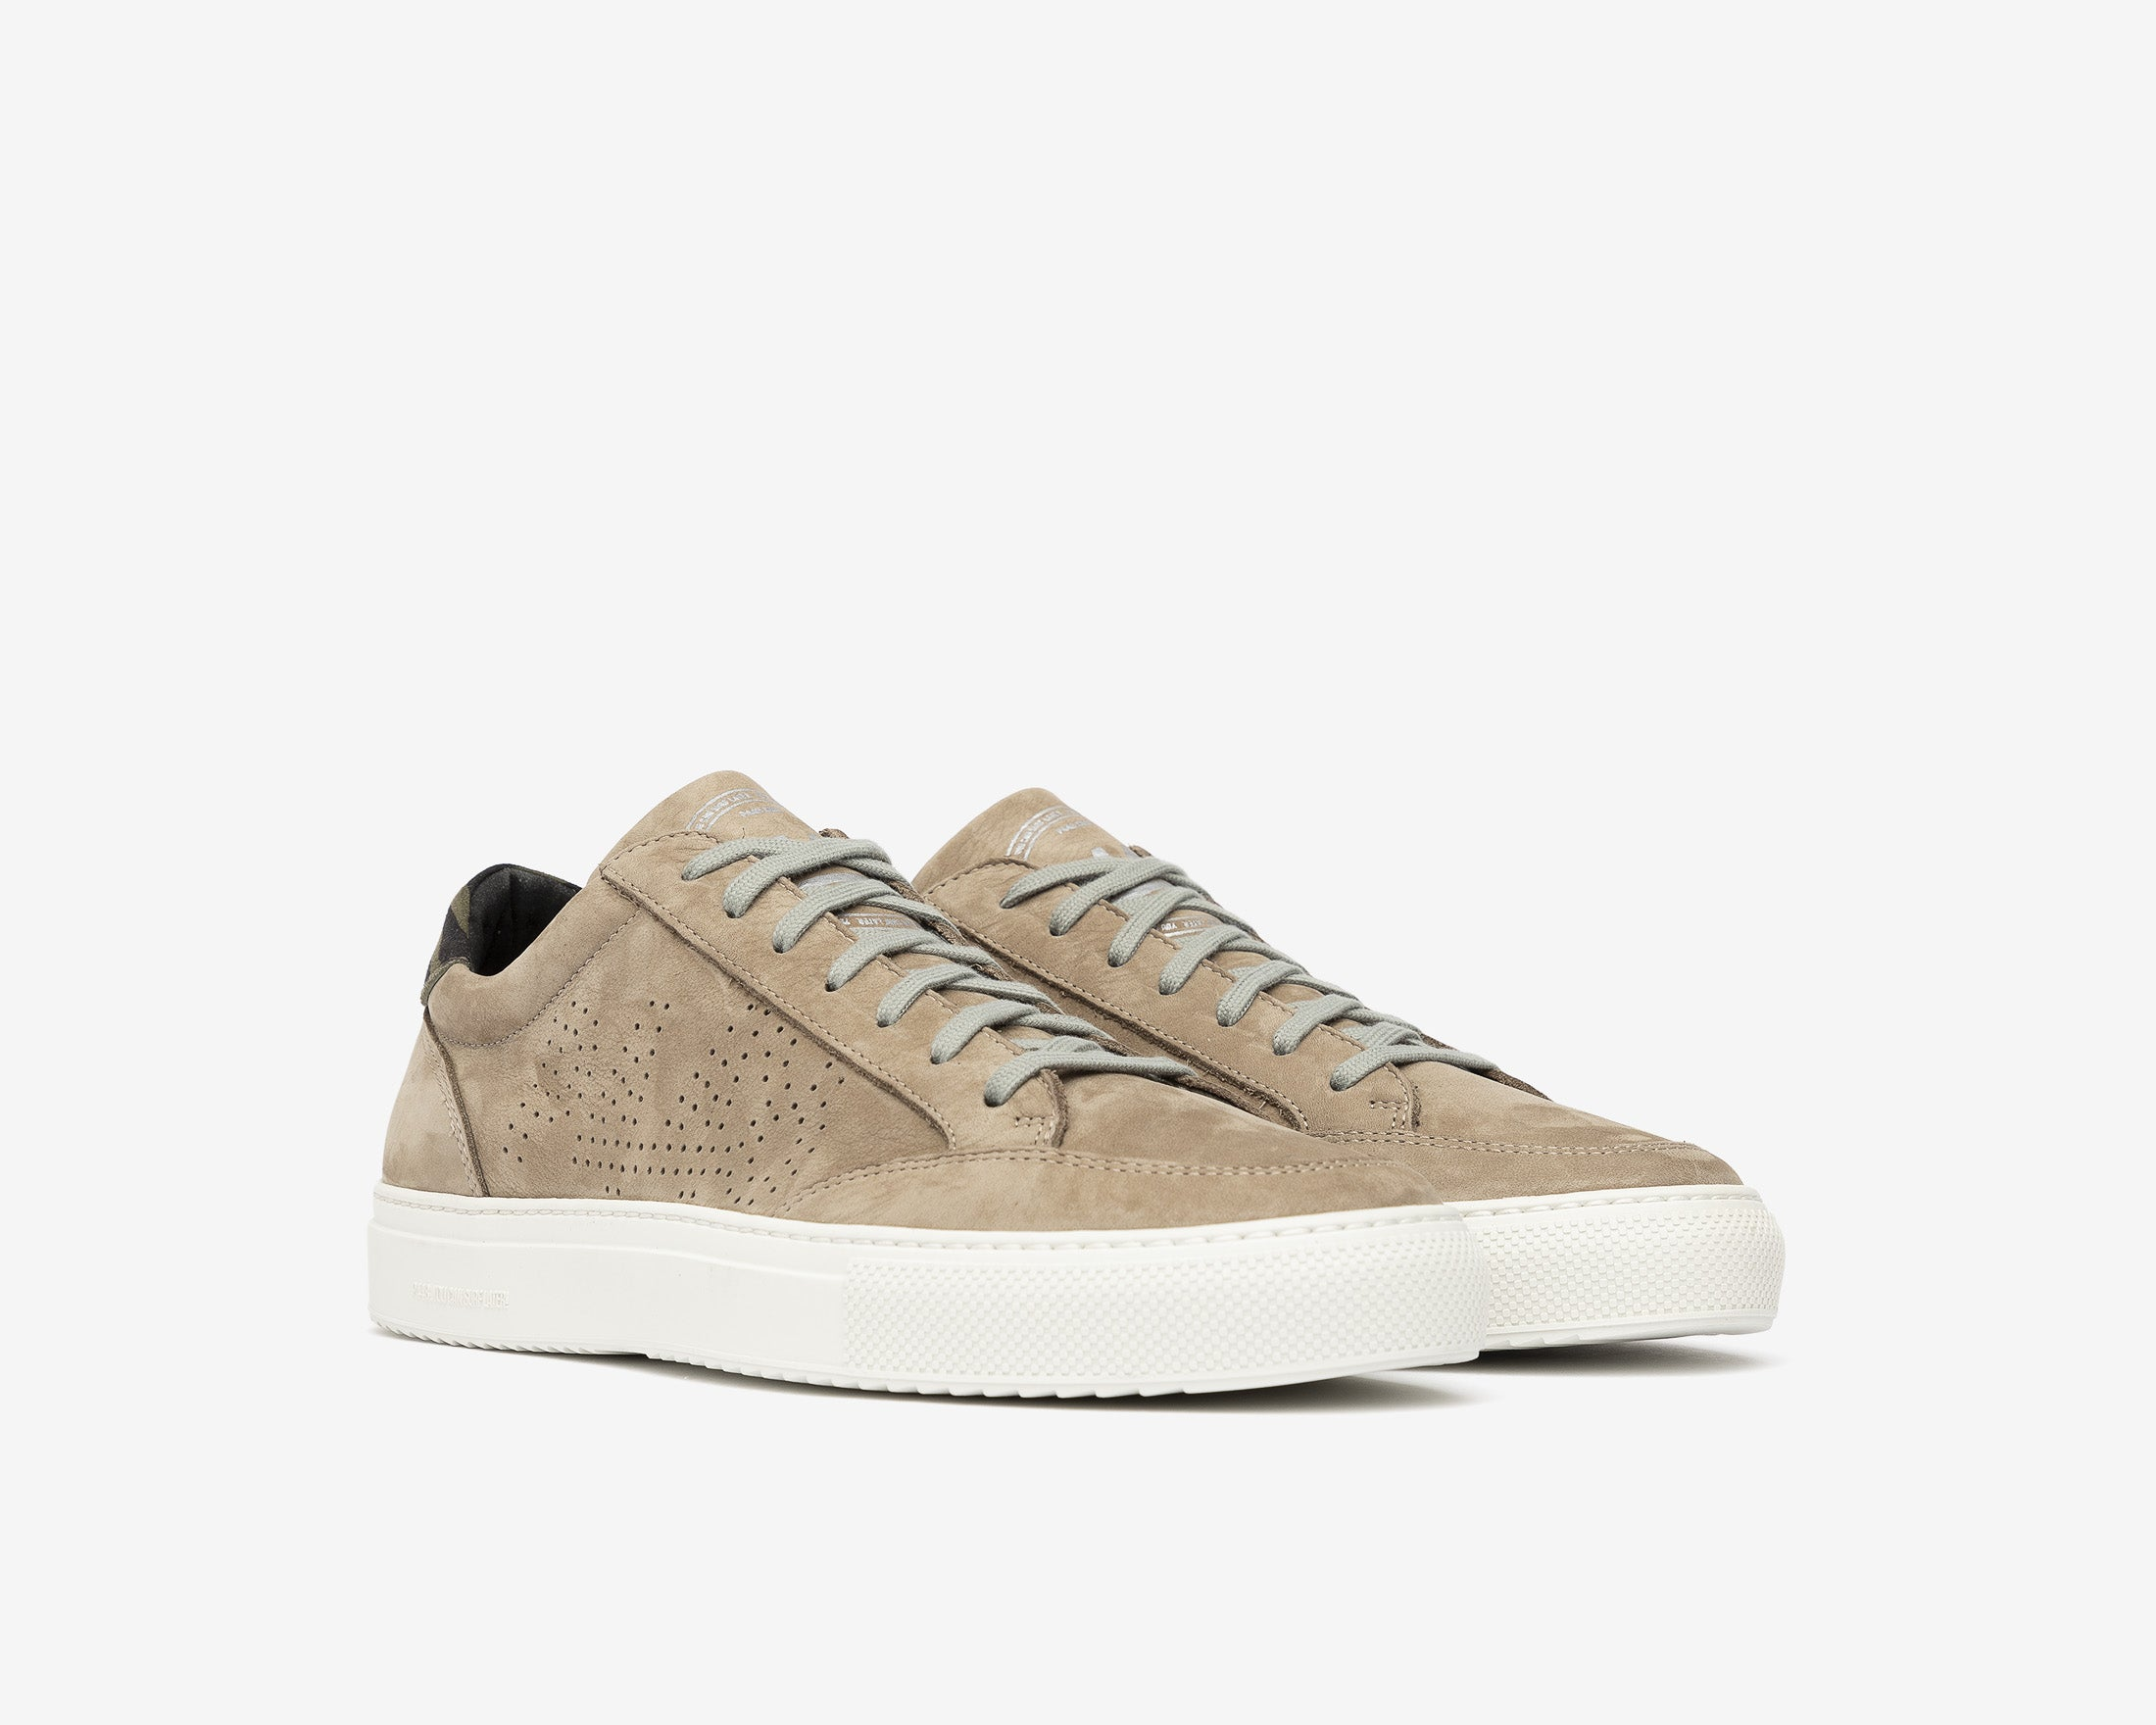 Soho Low-Top Sneaker in Gray Nab - Side